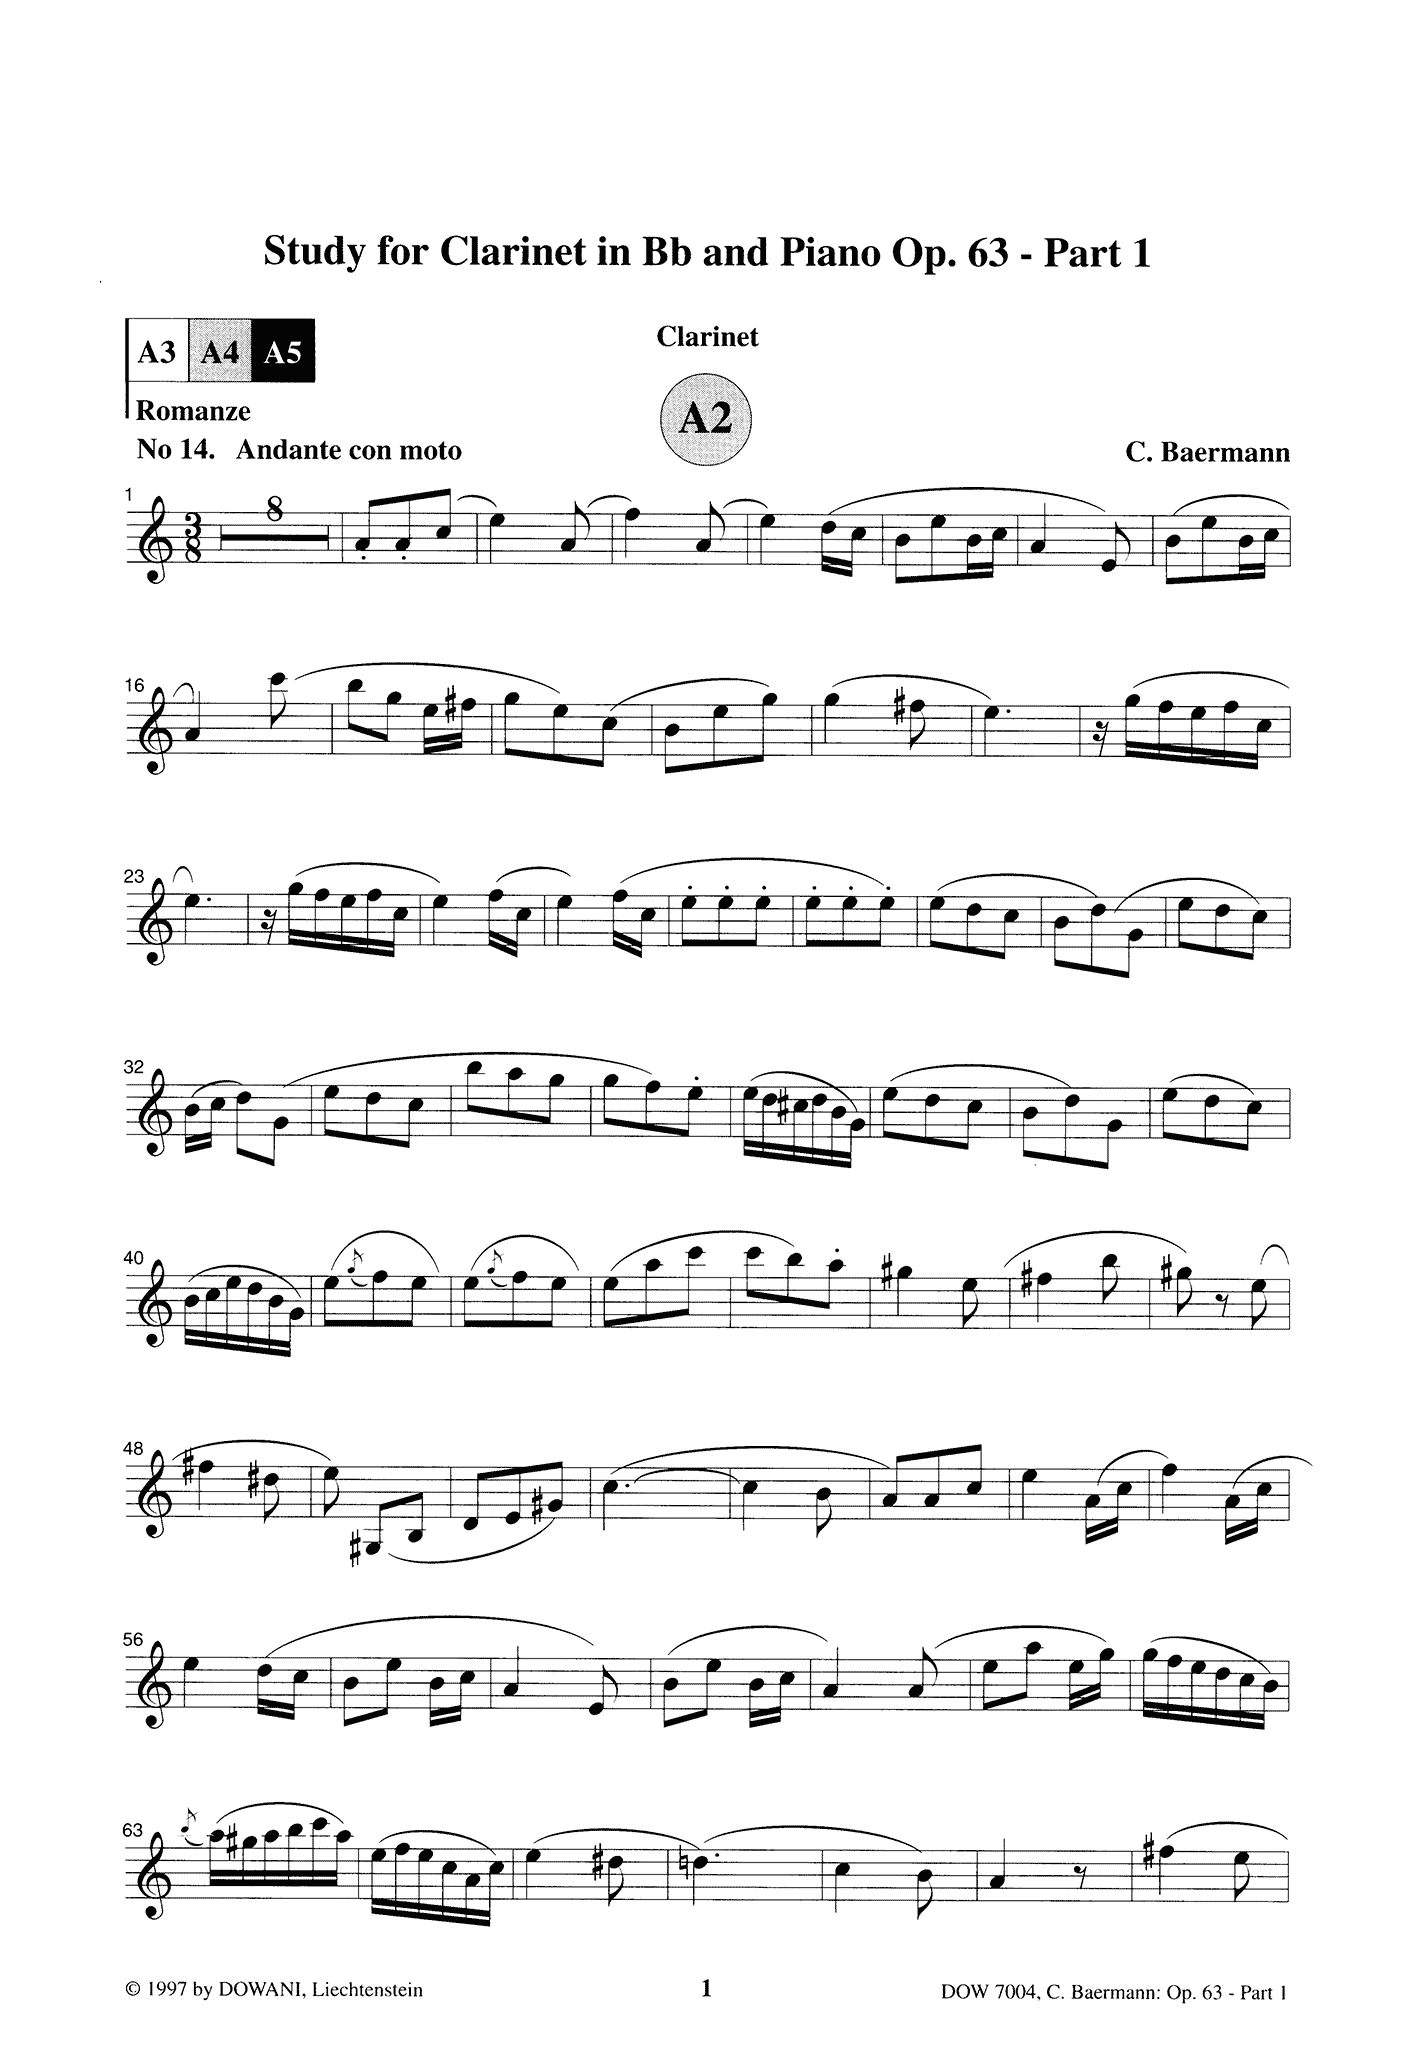 Clarinet Method, Op. 63, Div. II: Part 1 of 3 Clarinet part Page 1